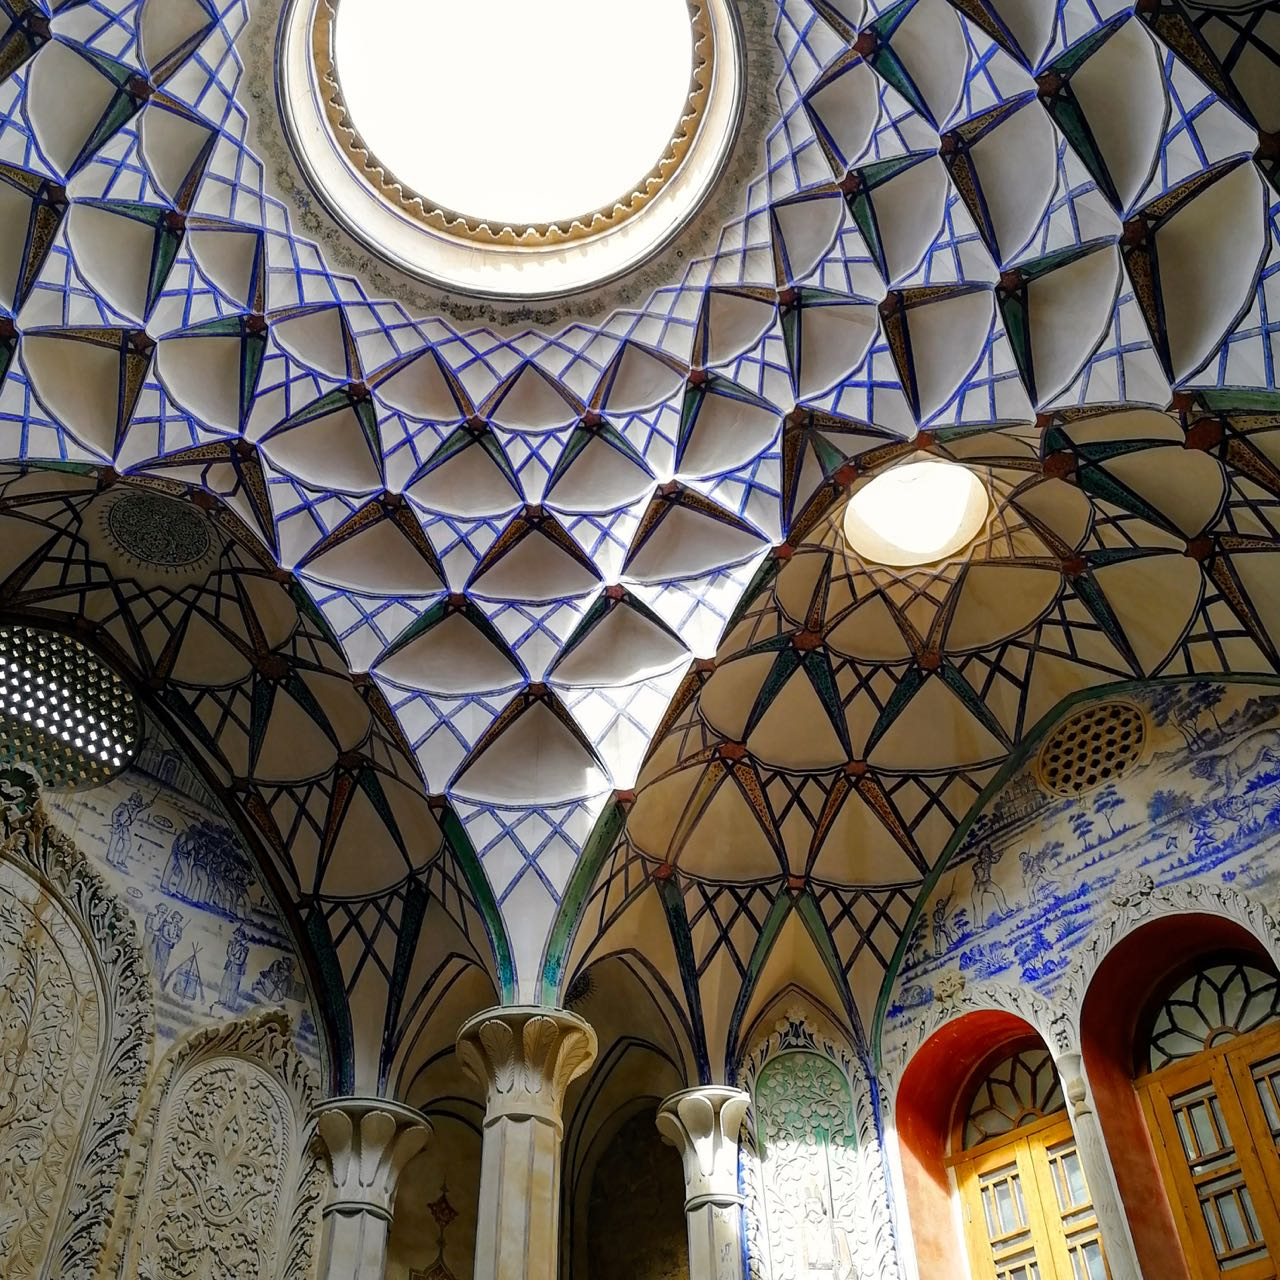 Iran-Kashan-Borujerdi-House-dome-windows.jpg